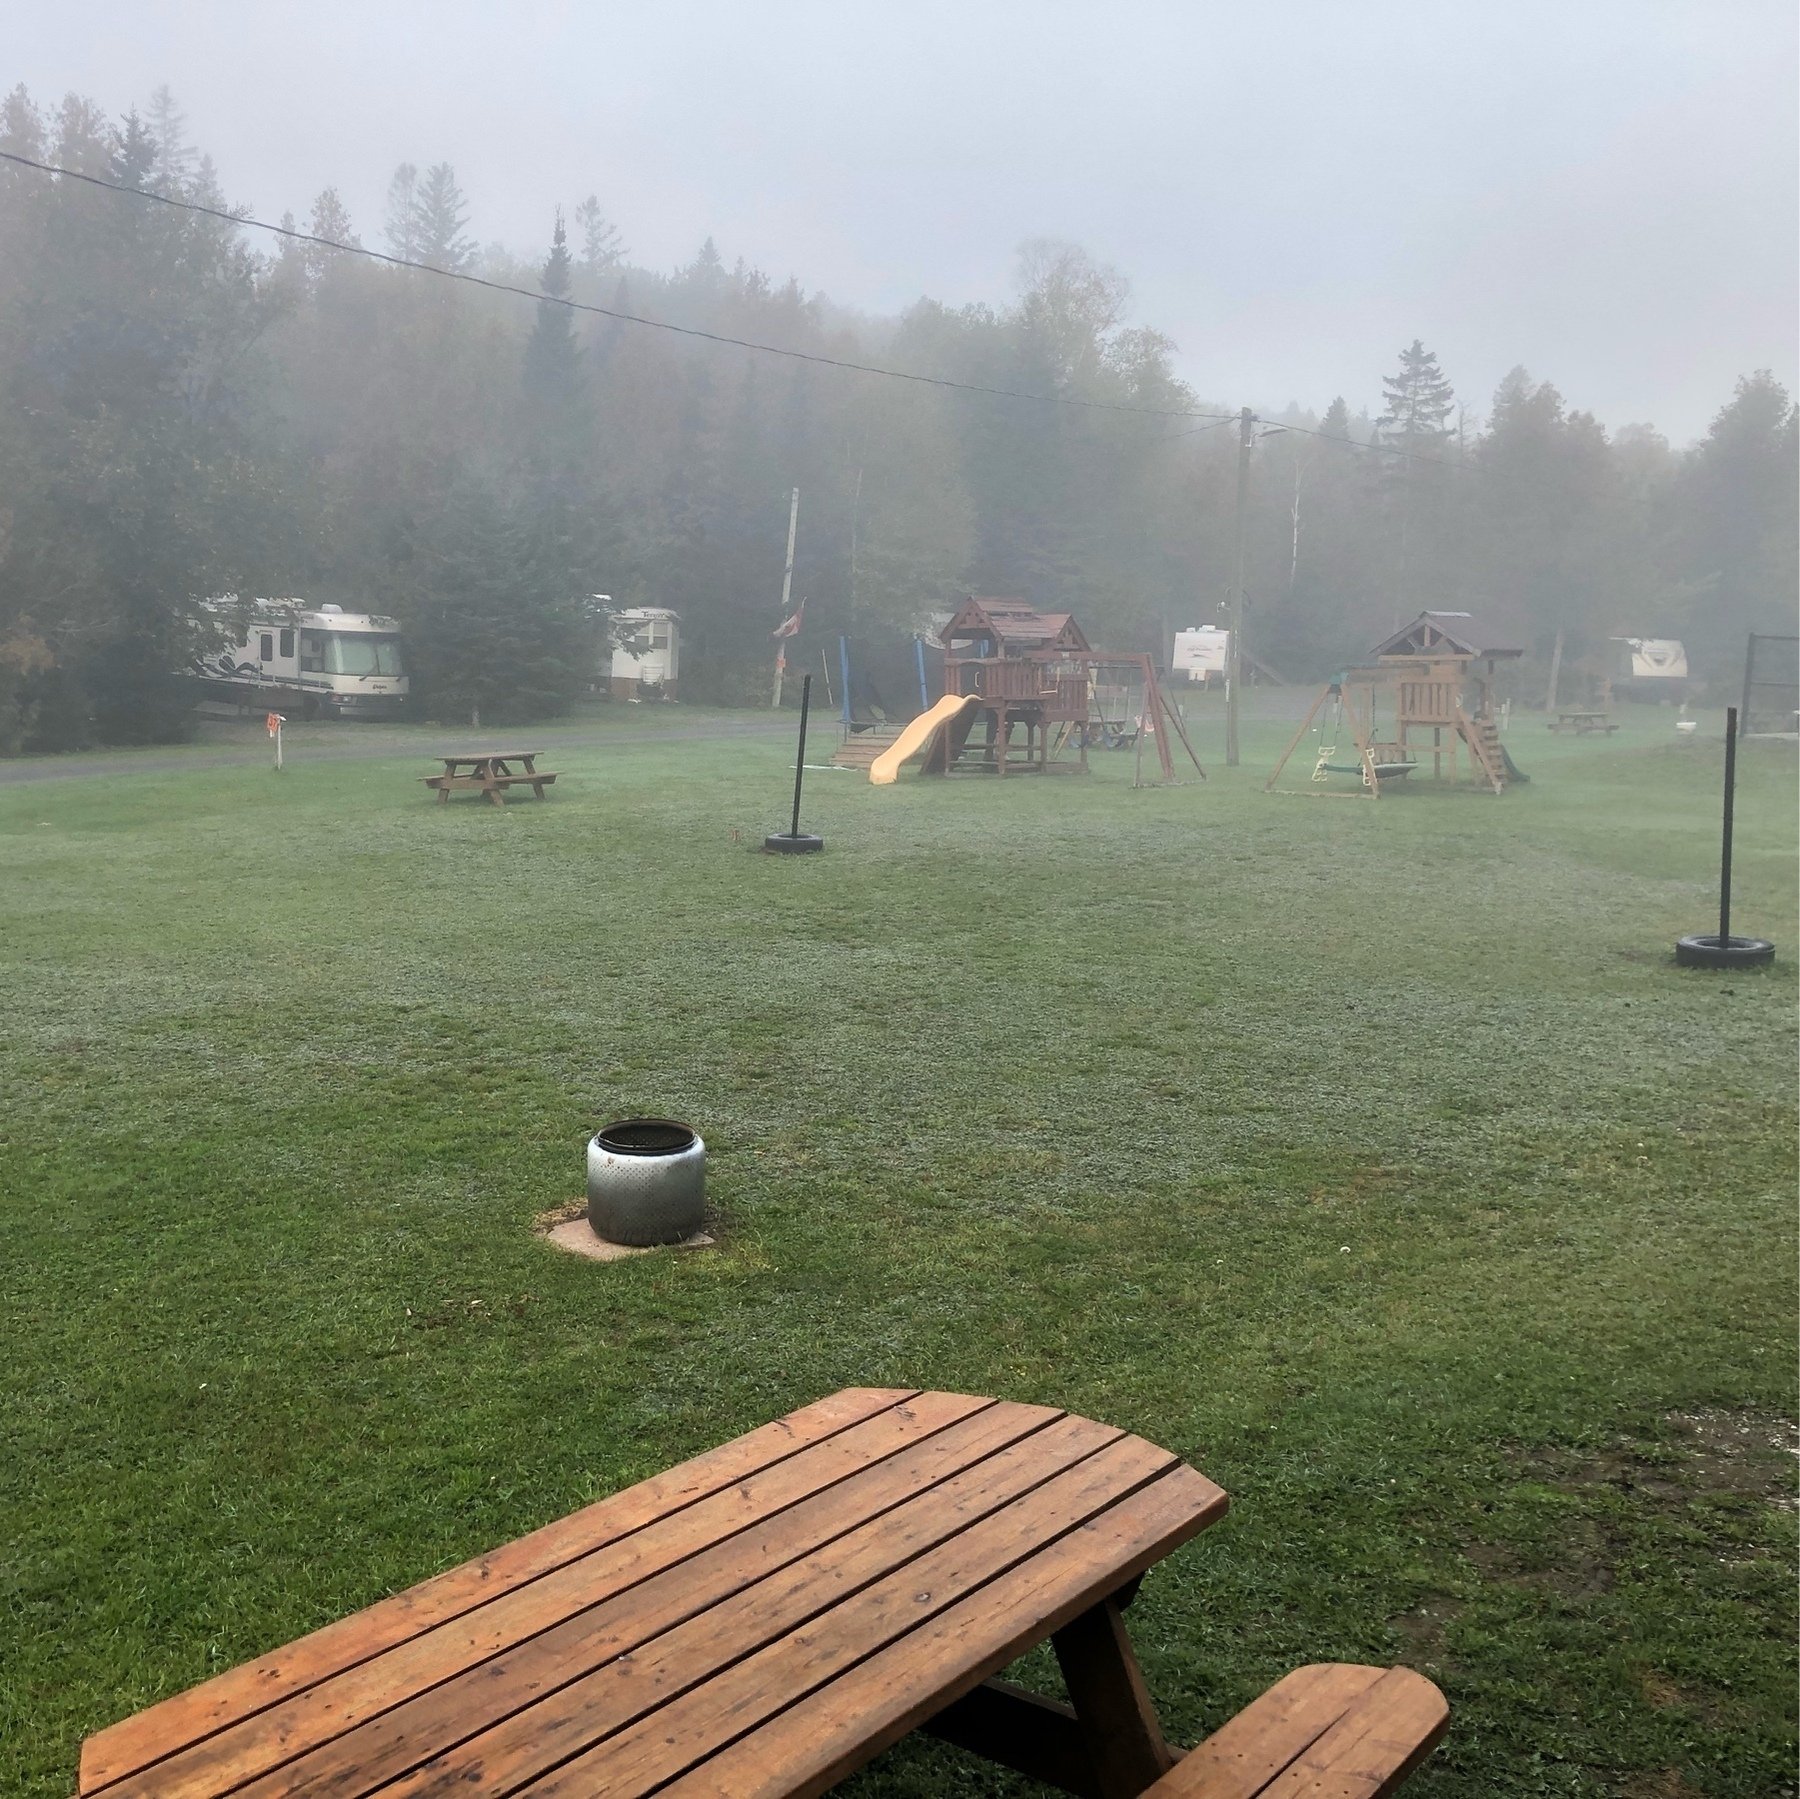 a picnic table on frost-covered grass. fog in the air. kids playground equipment in the background